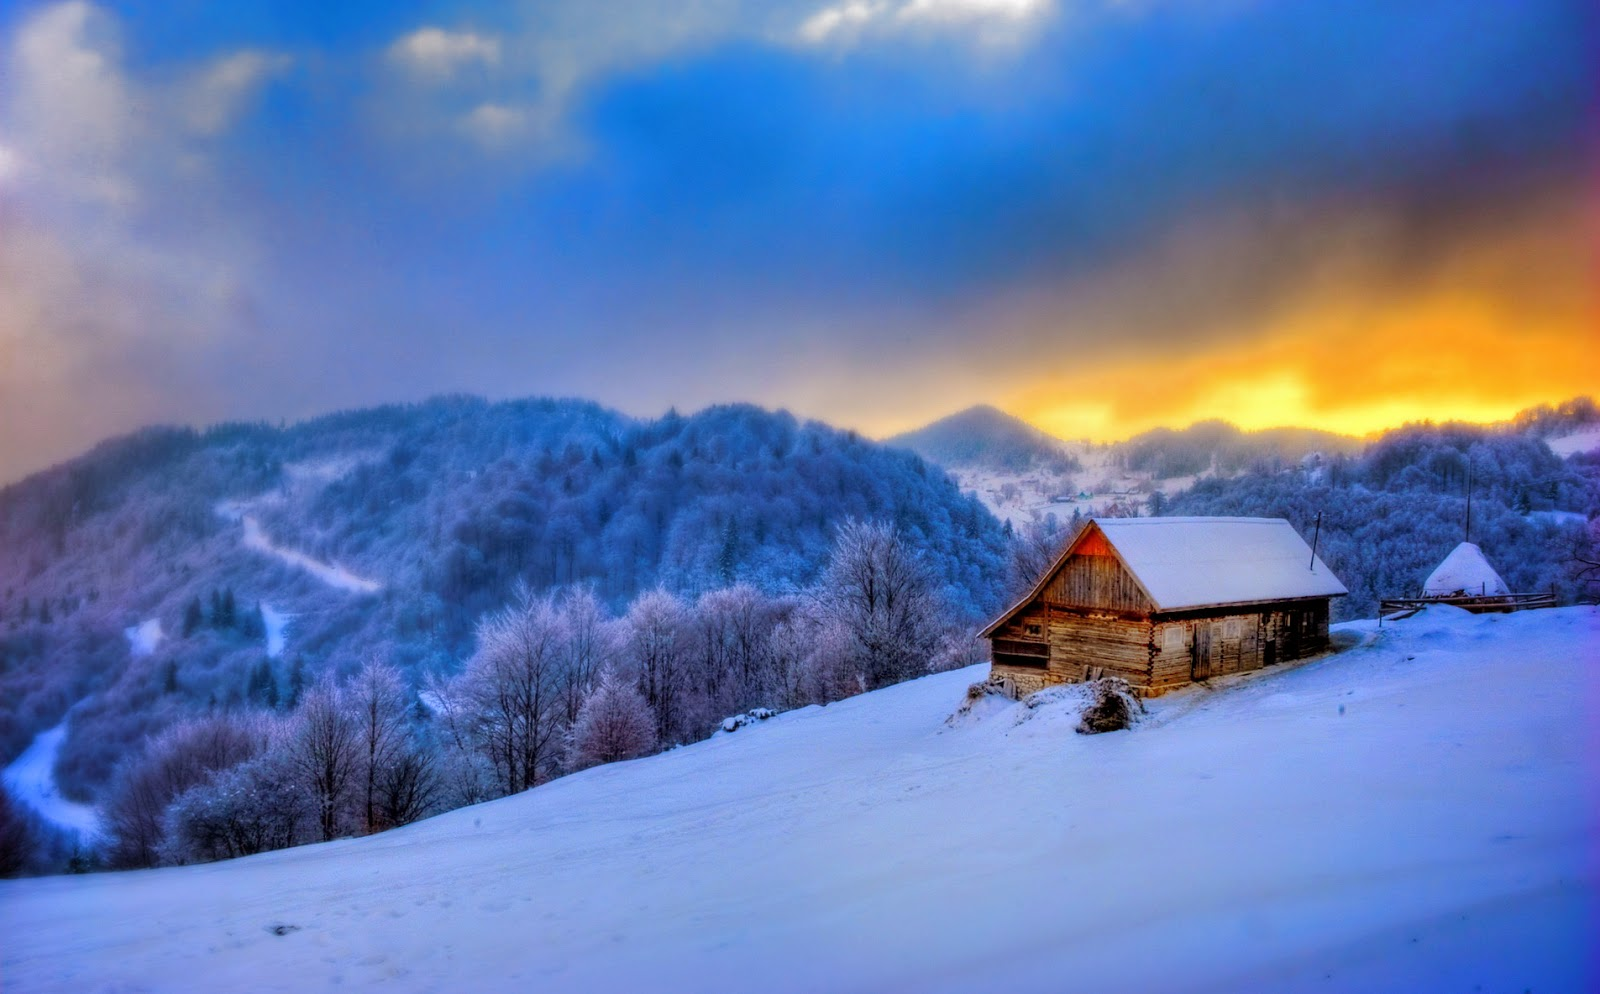 Coolest Cabins: 5 Christmas Cabins